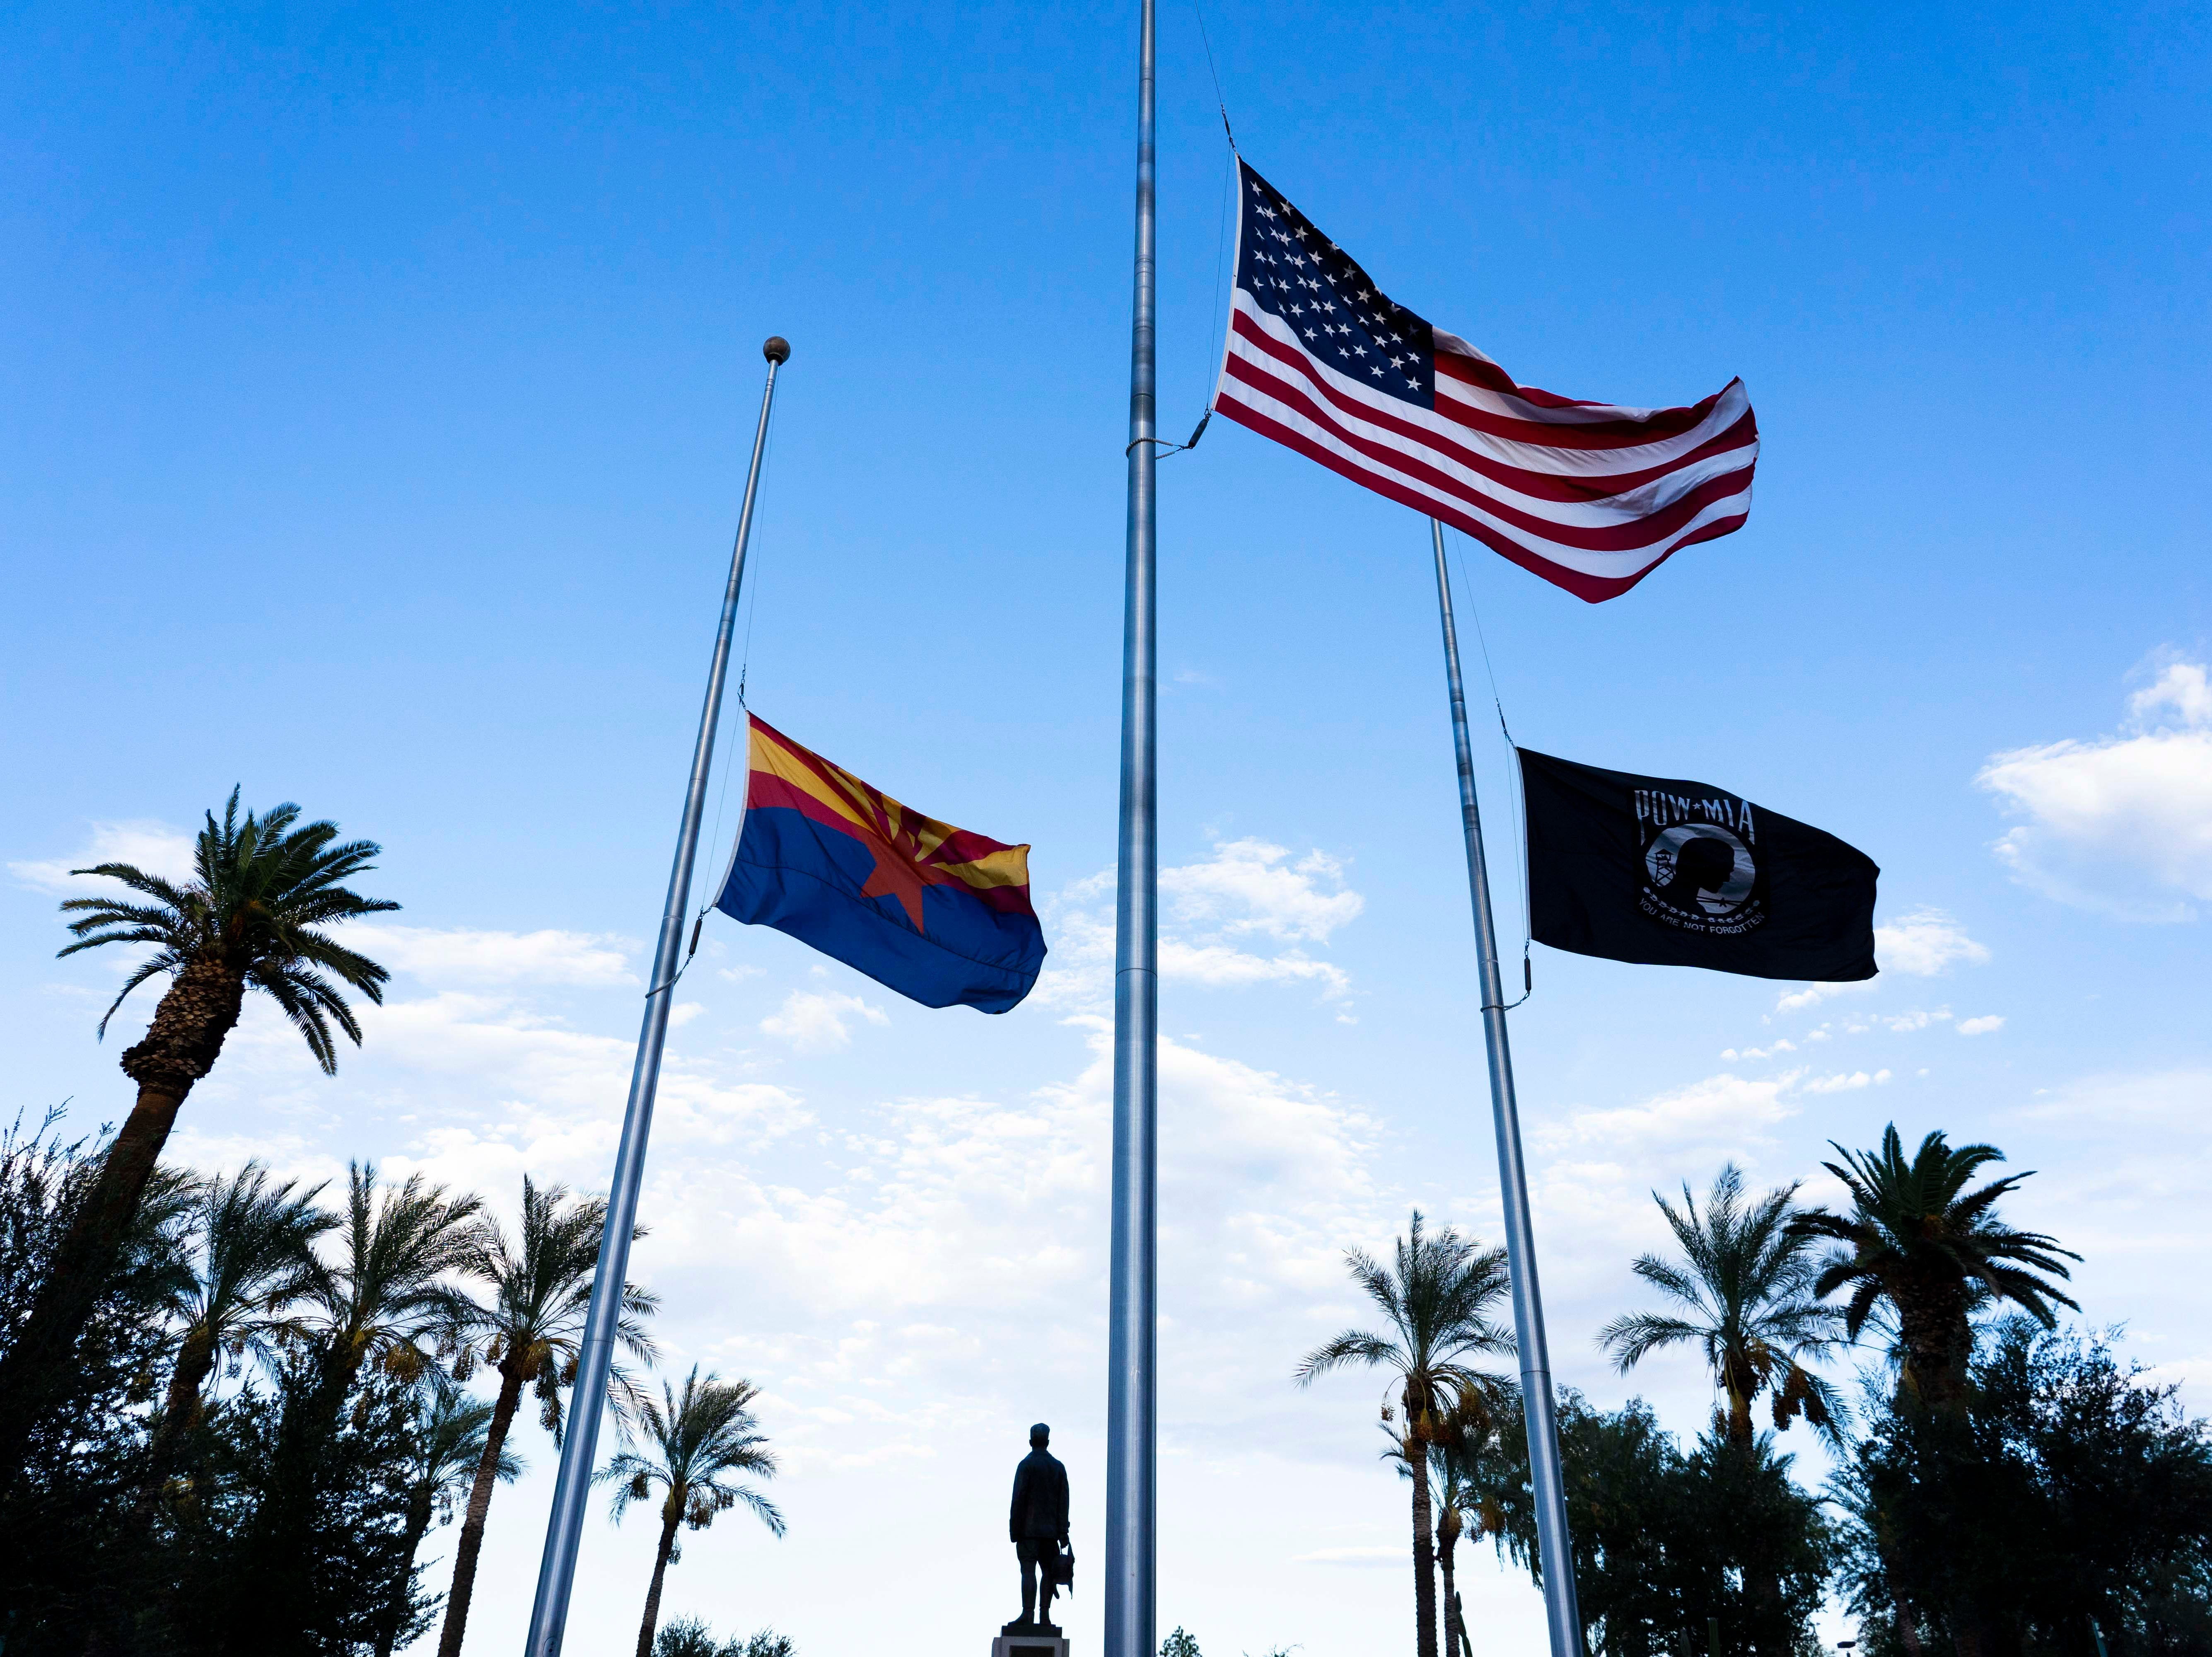 Flags were lowered down at the half-staff at the Arizona State Capitol to honor John McCain, who endured more than five years as a prisoner of war in Vietnam before becoming the 2008 Republican presidential nominee and serving Arizona for more than 30 years on Capitol Hill, died Saturday, August, 25th at age 81.